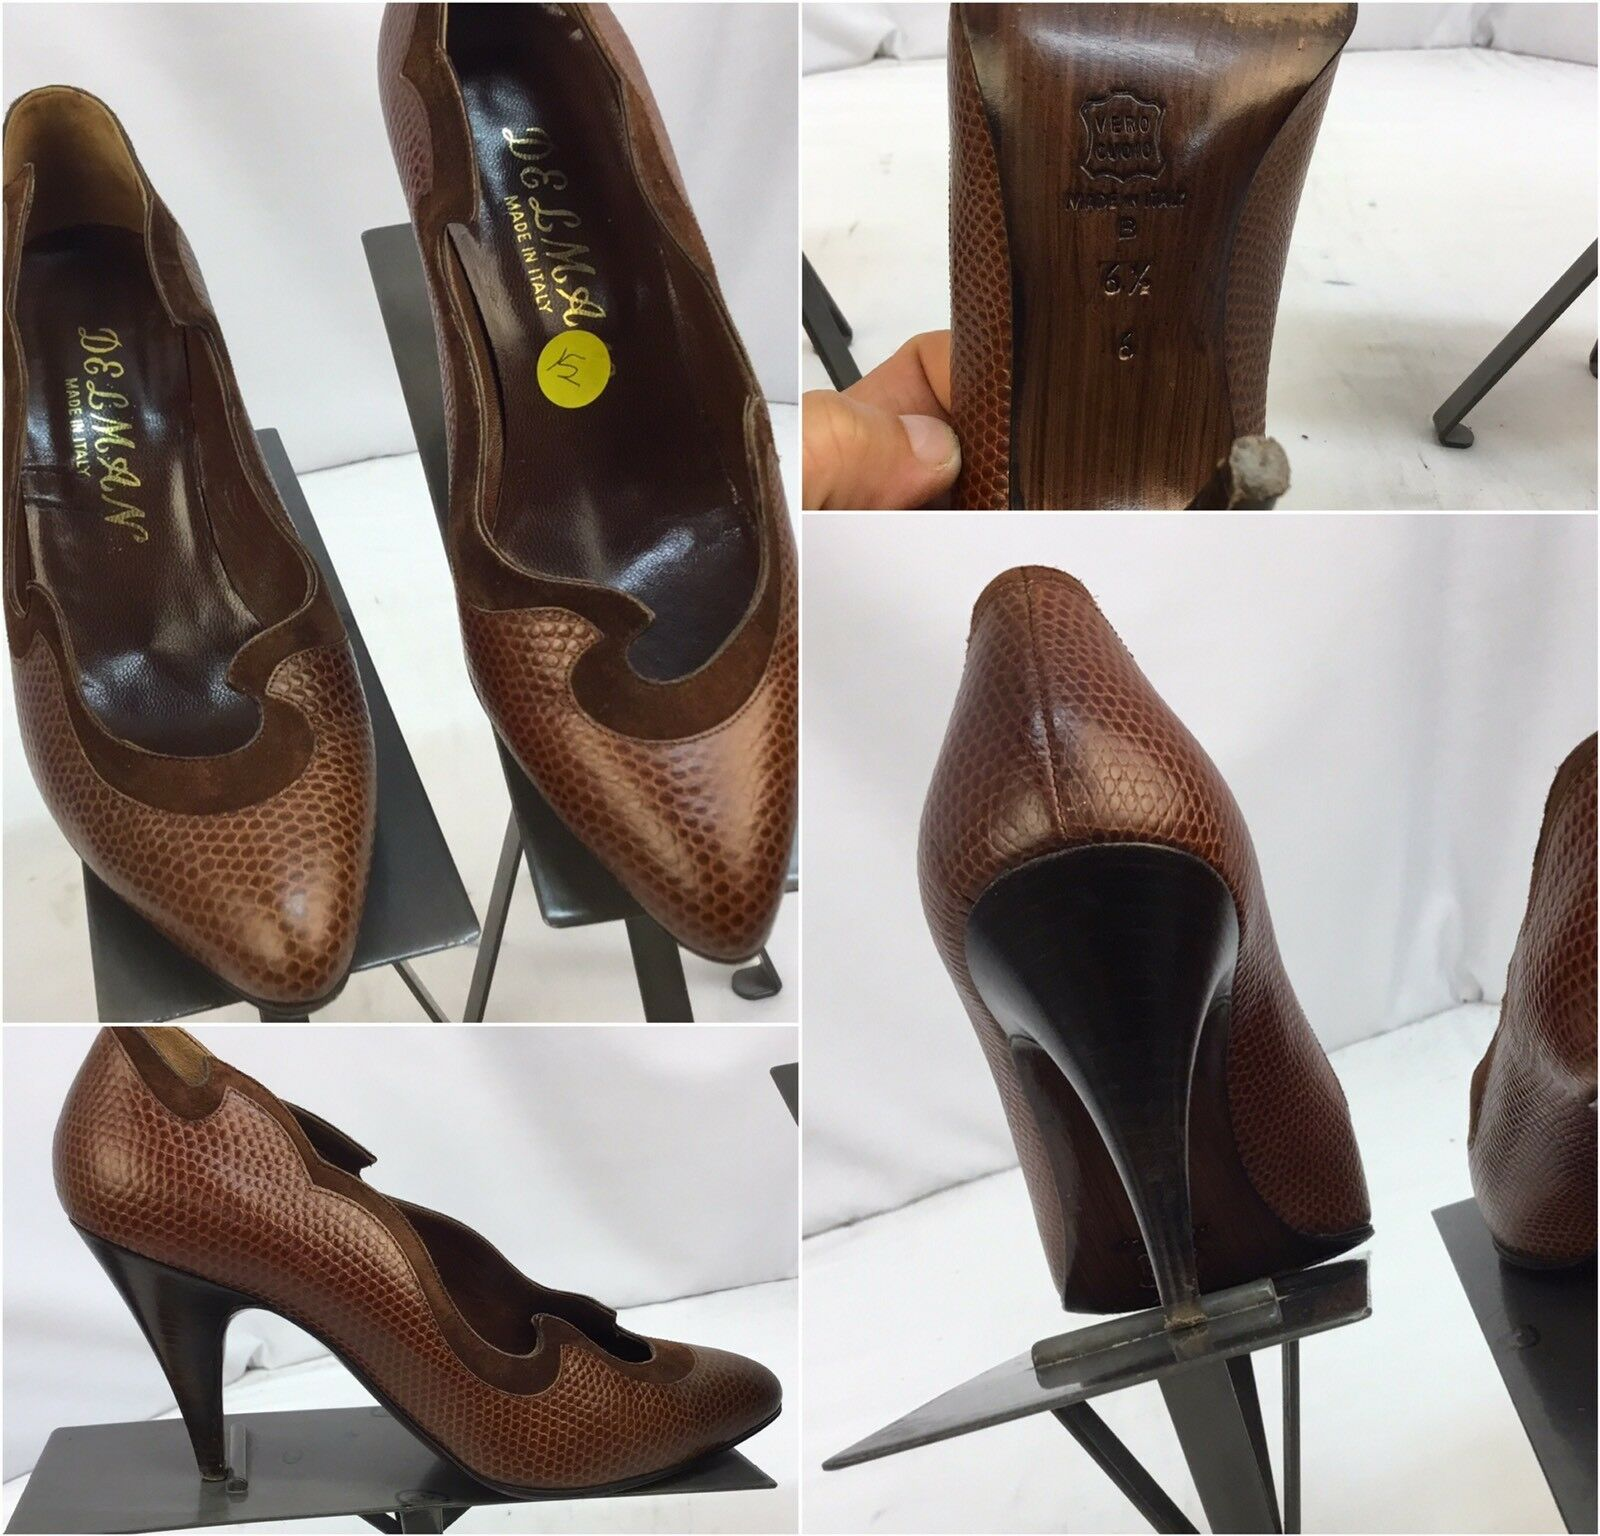 Delman Heels Shoes Sz 6.5 Brown Leather Made In Italy Worn 2 Times YGI G7